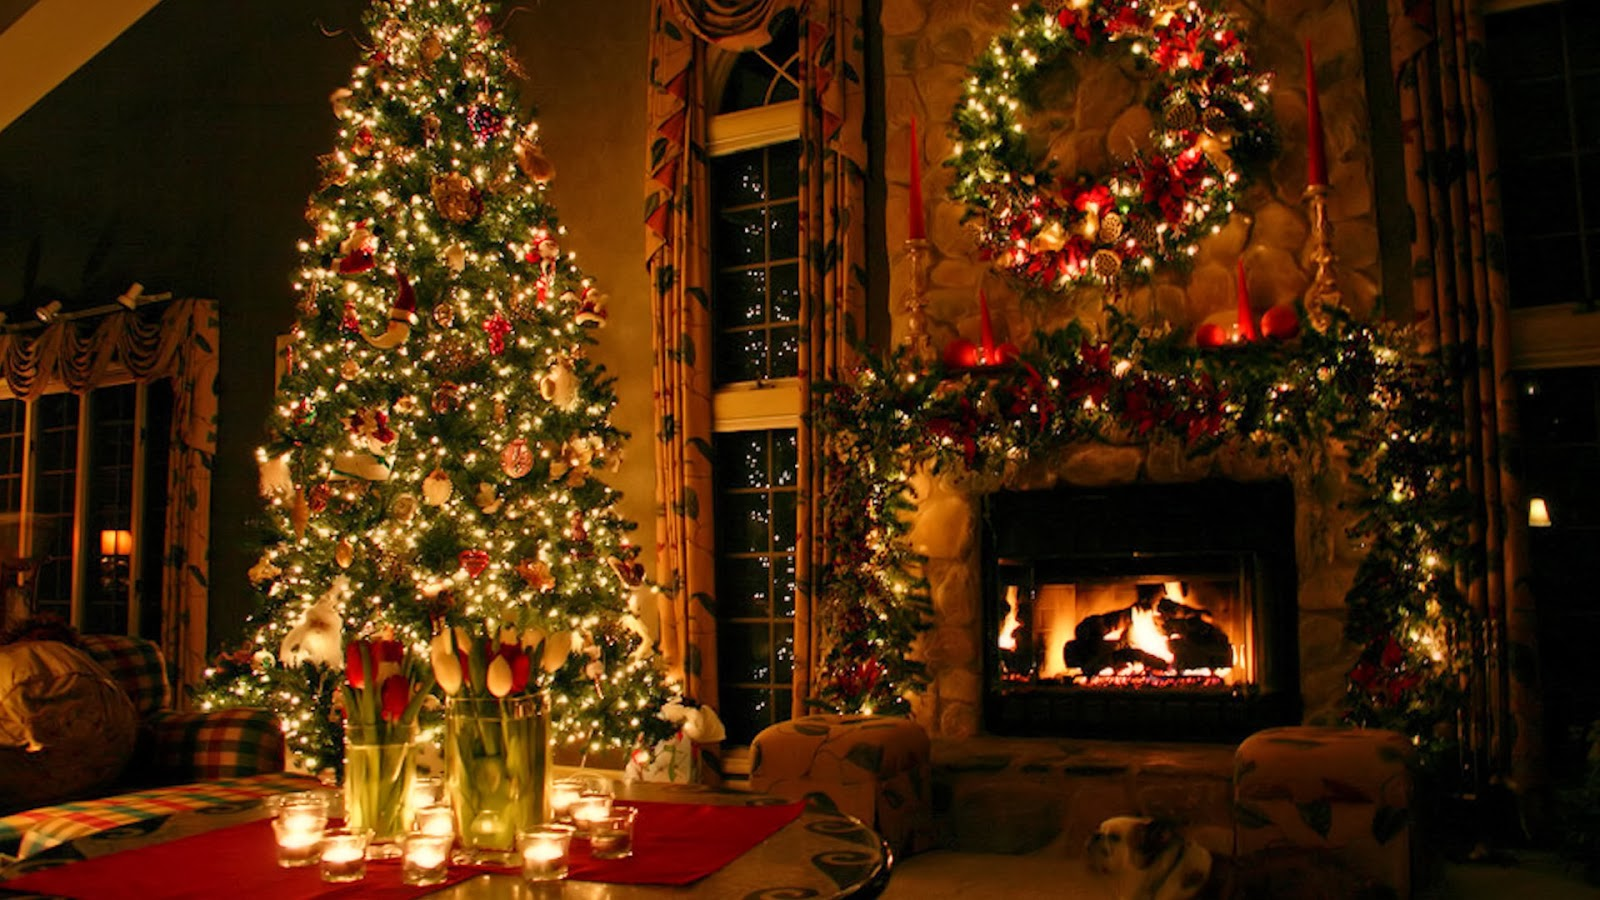 Christmas decorations ideas world top blogger for Christmas holiday ideas